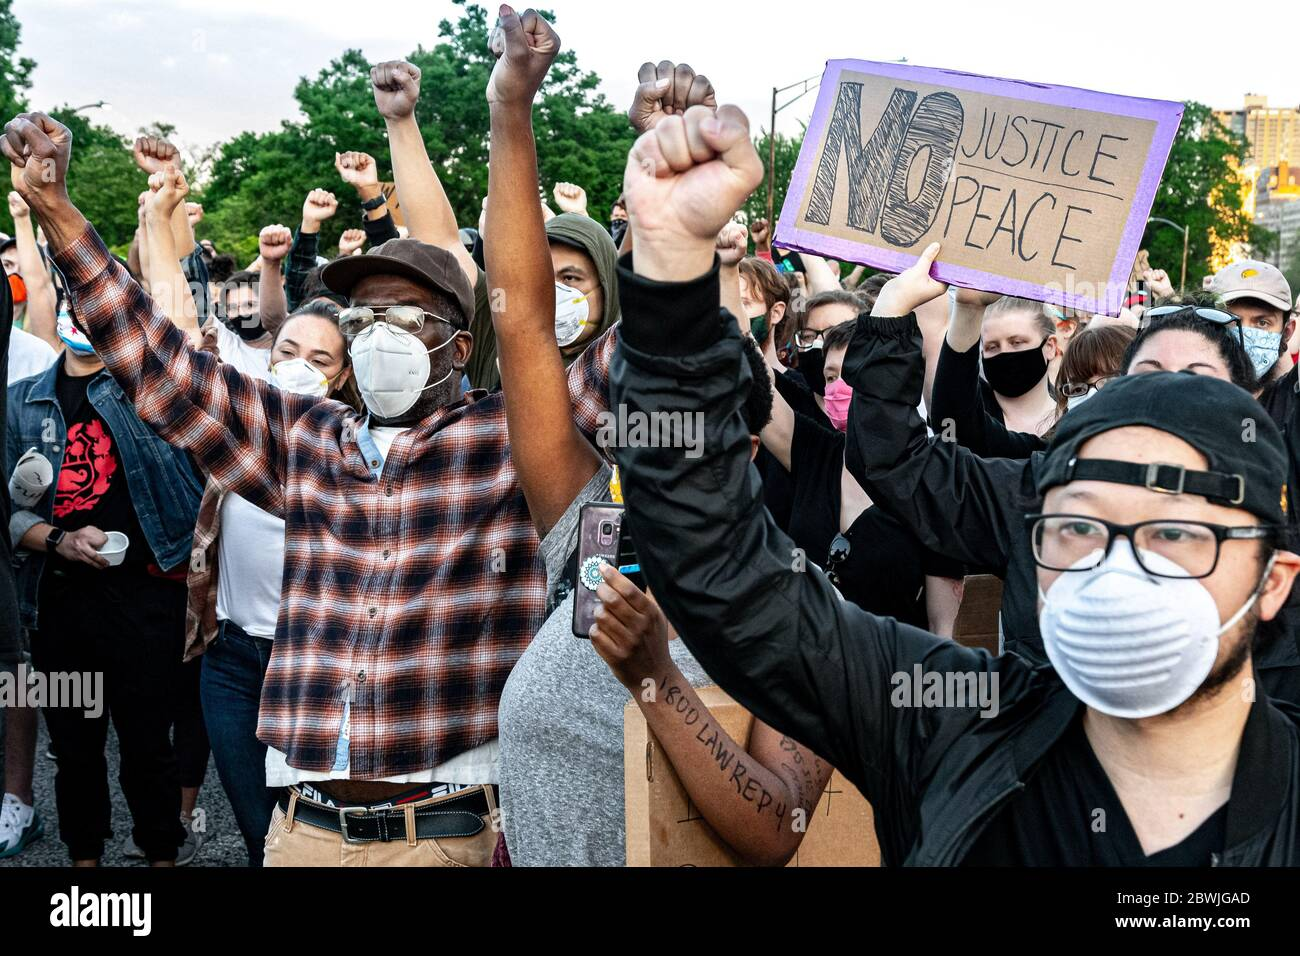 Chicago, Illinois, USA. 1st June, 2020. After three days of mixed violence, rioting, protesting, and looting, a peaceful protest takes to the streets of Chicago's Northside and Lake Shore Drive Credit: Chris Riha/ZUMA Wire/Alamy Live News Stock Photo